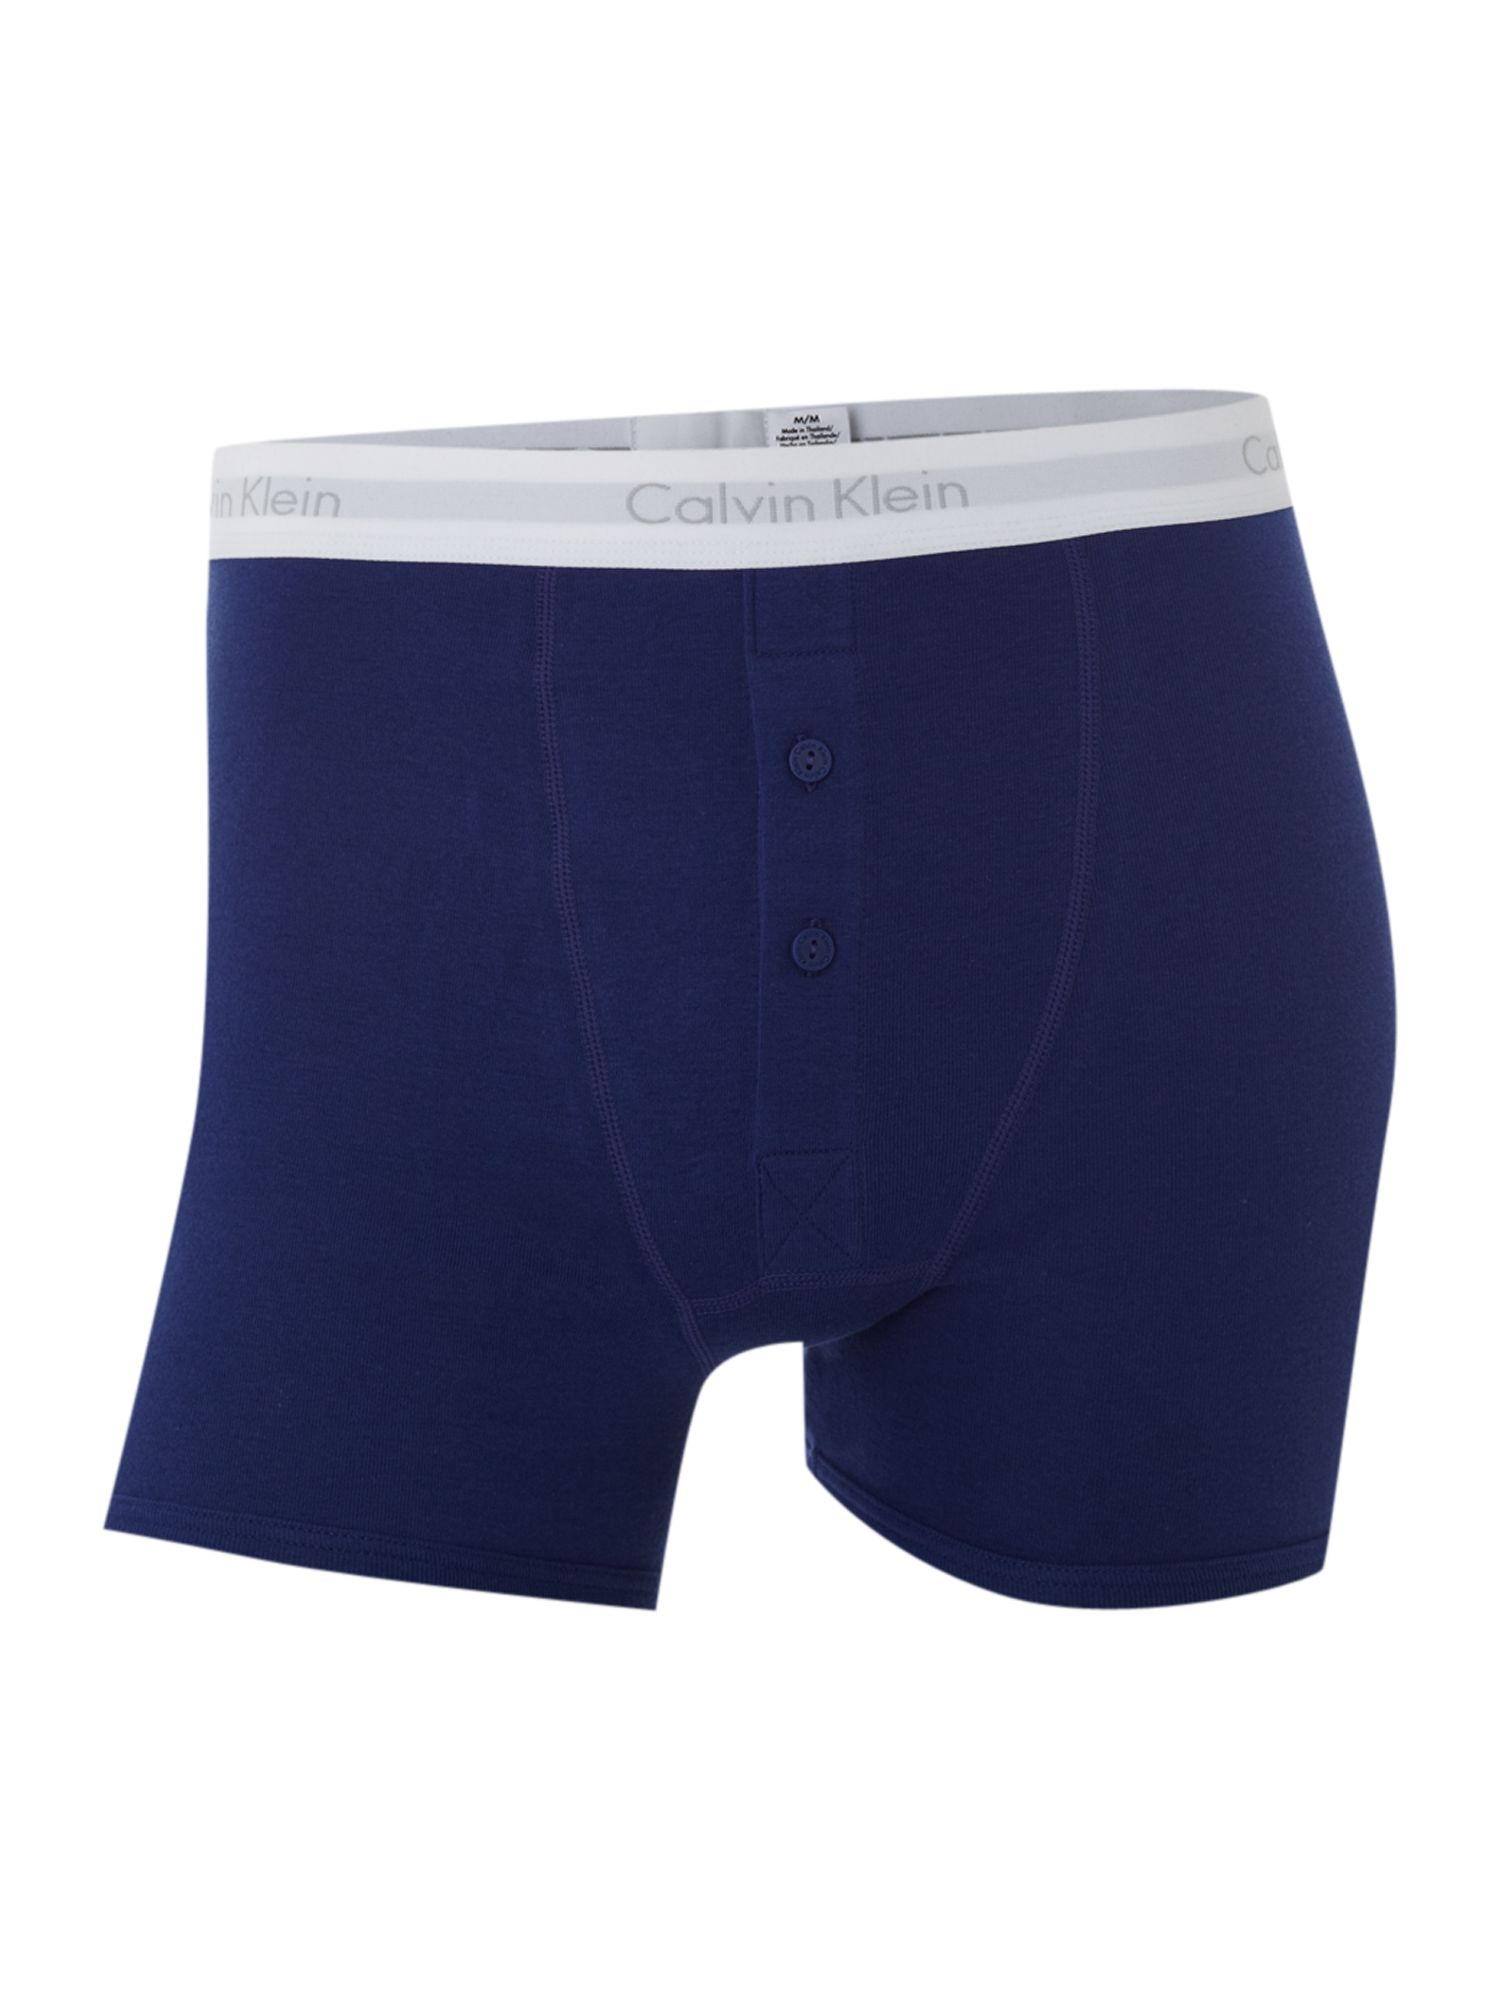 Heritage cotton button fly boxer brief